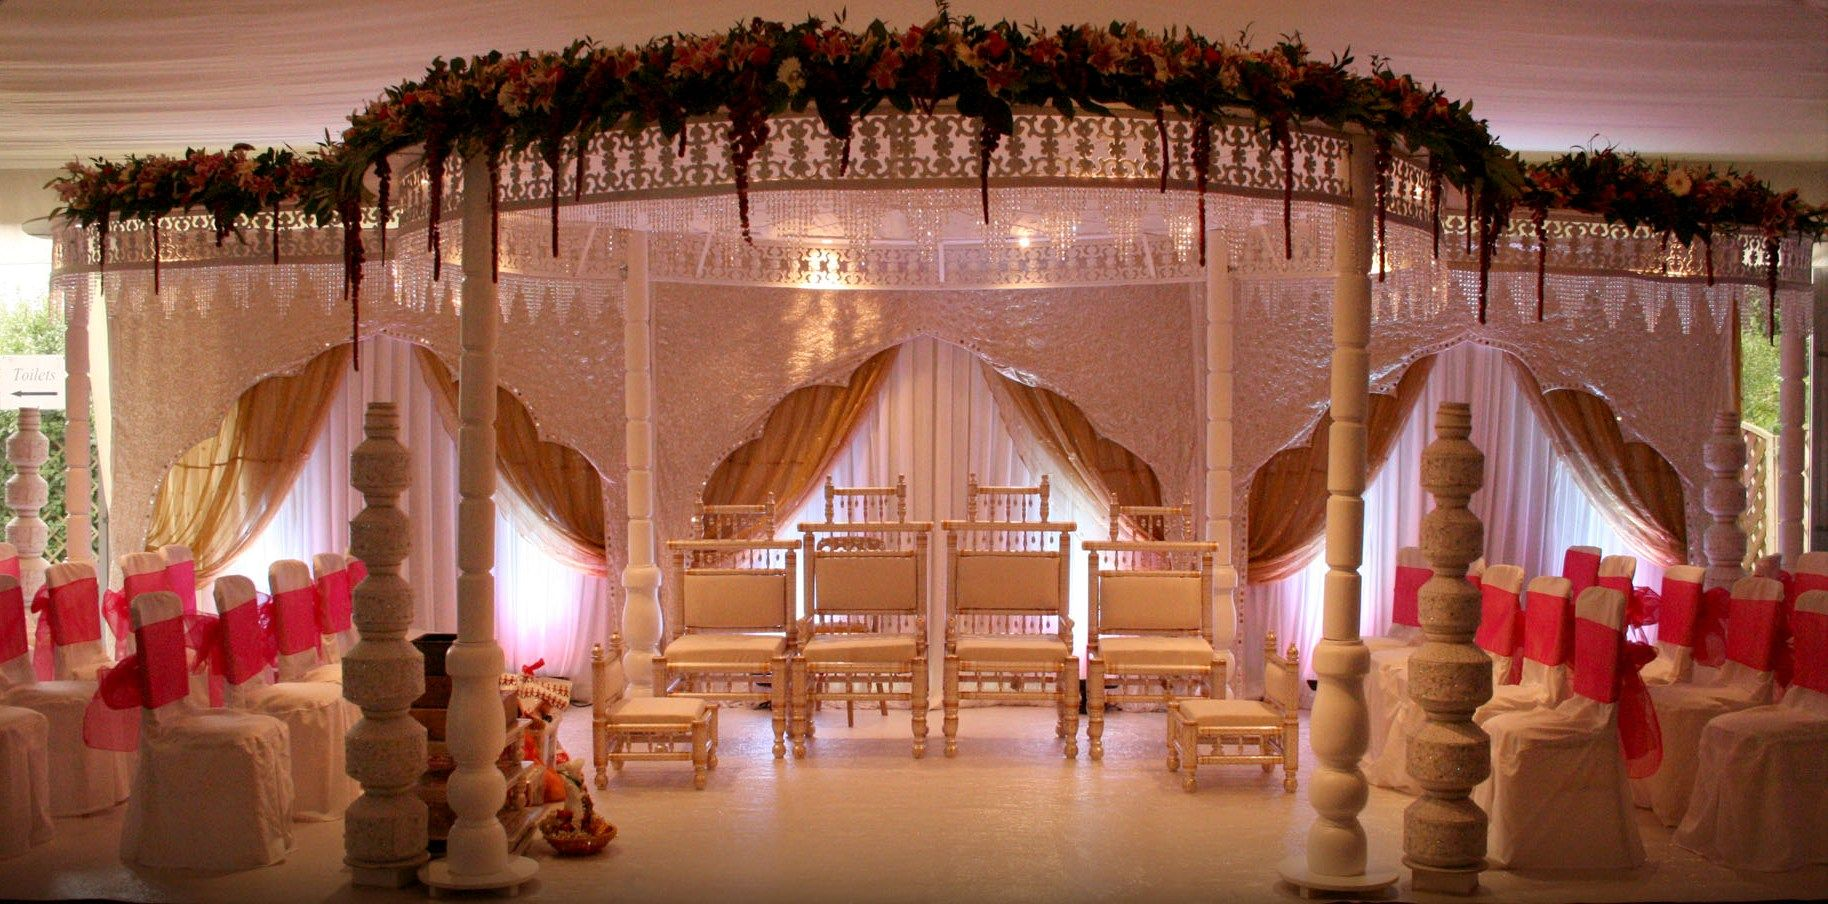 stunning asian wedding venue - if you're looking for a wedding